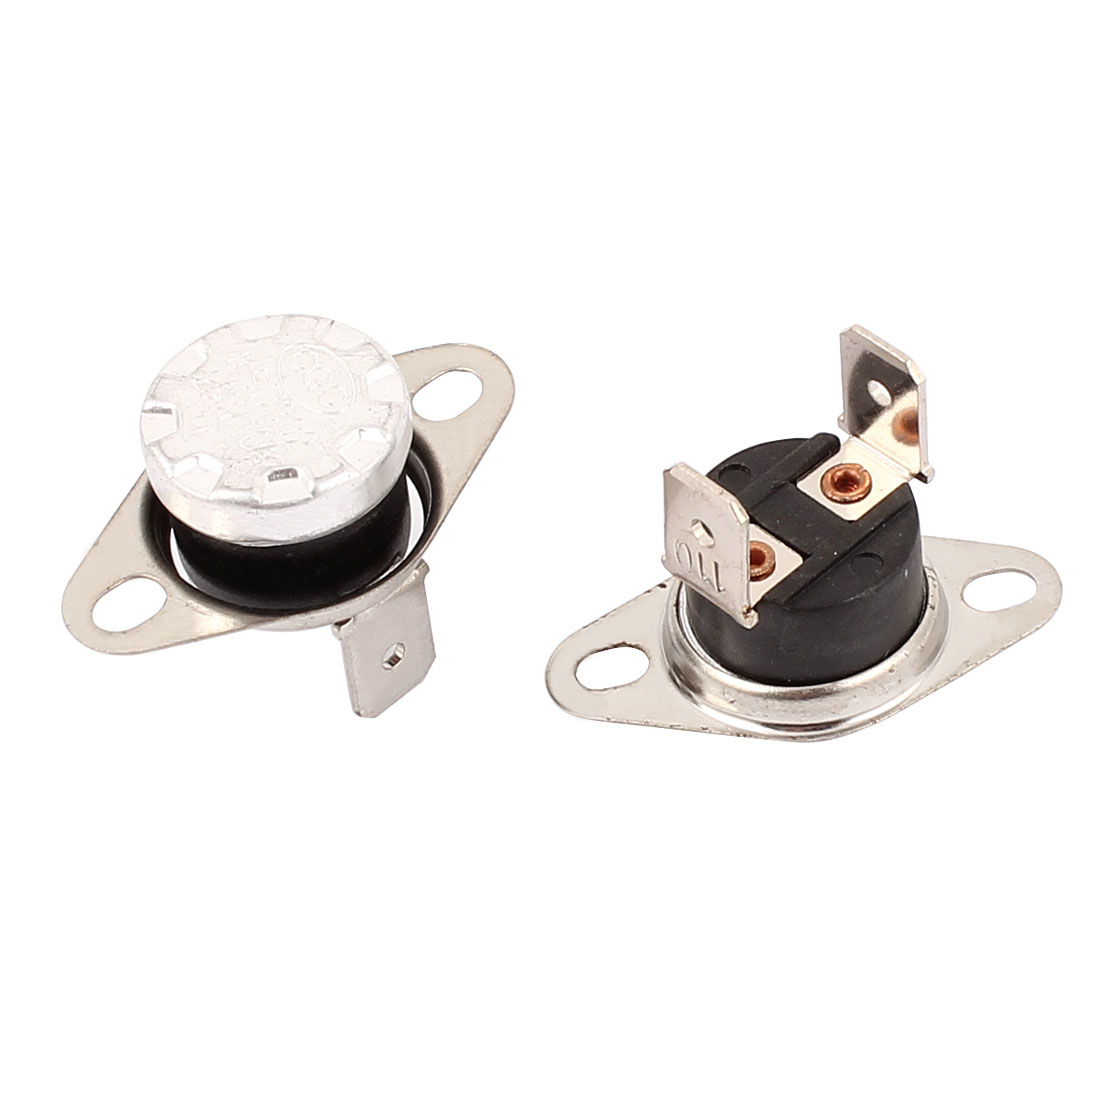 2 Pcs KSD302 Temperature Control Switch Thermostats 250VAC 10A 110 Celsius N.C.